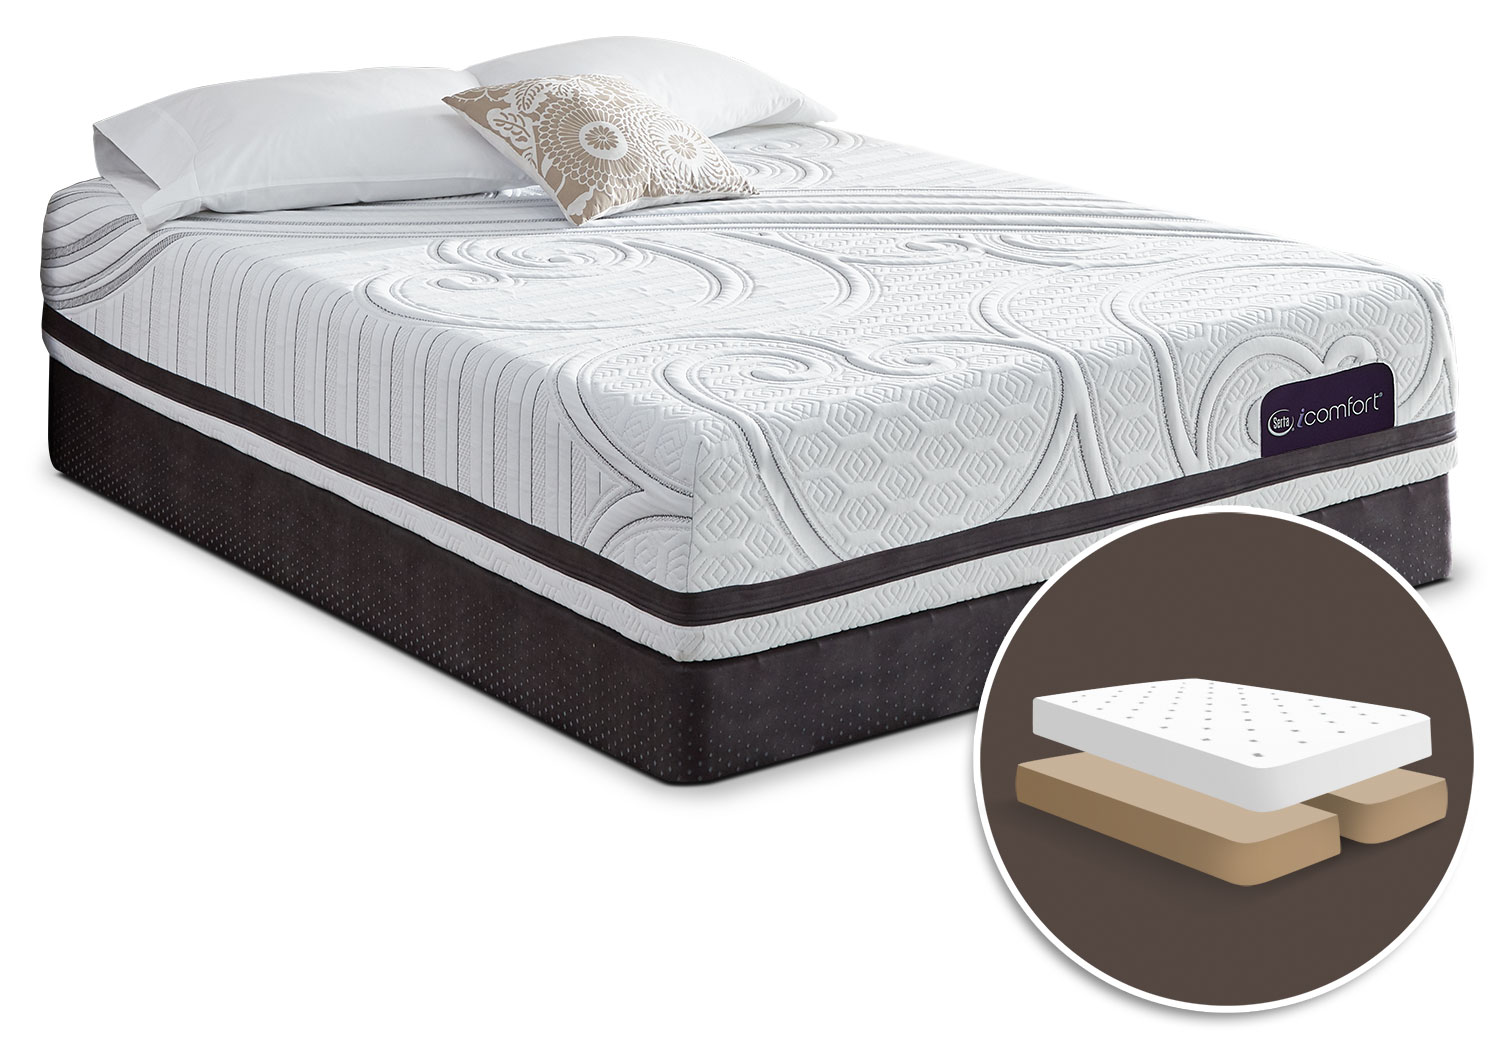 Serta iComfort Visionary Plush 2 Queen Mattress with Split Boxspring Set